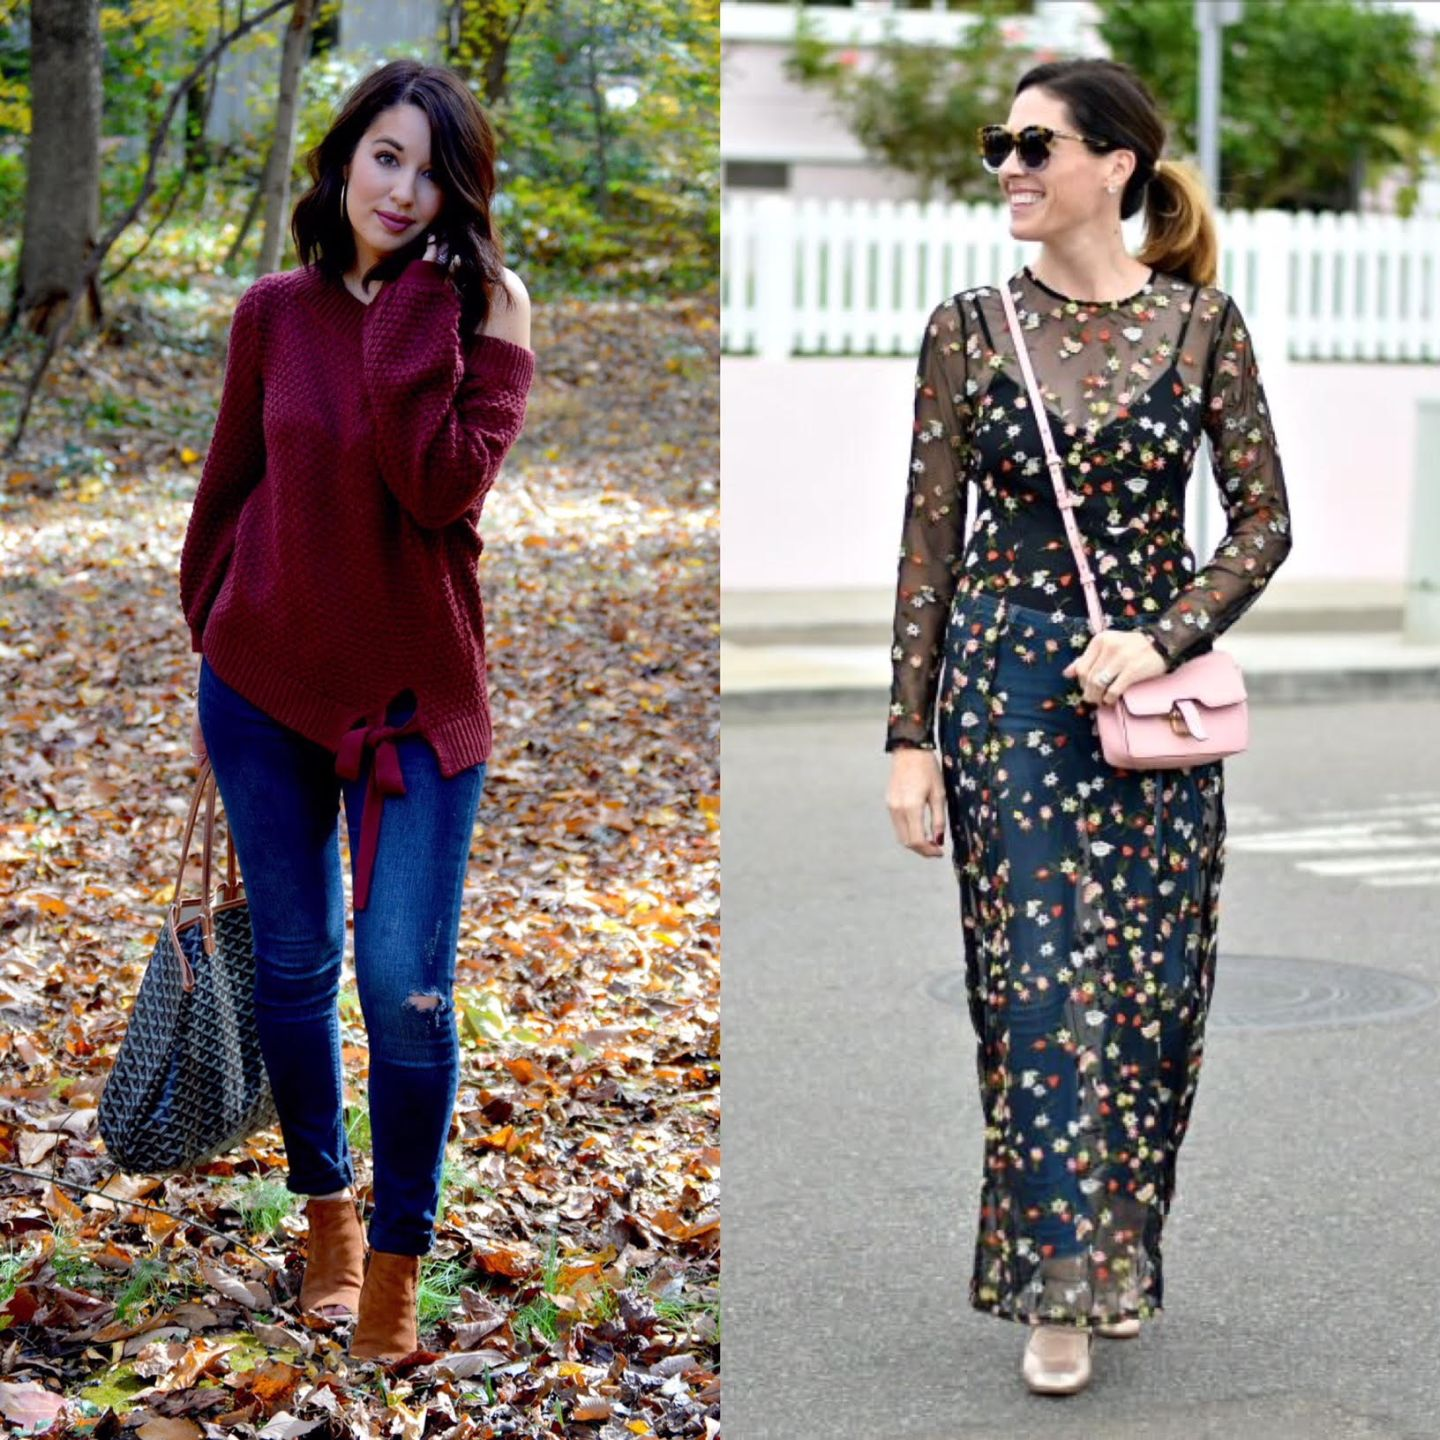 fashion and lifestyle featured bloggers to increase pageviews